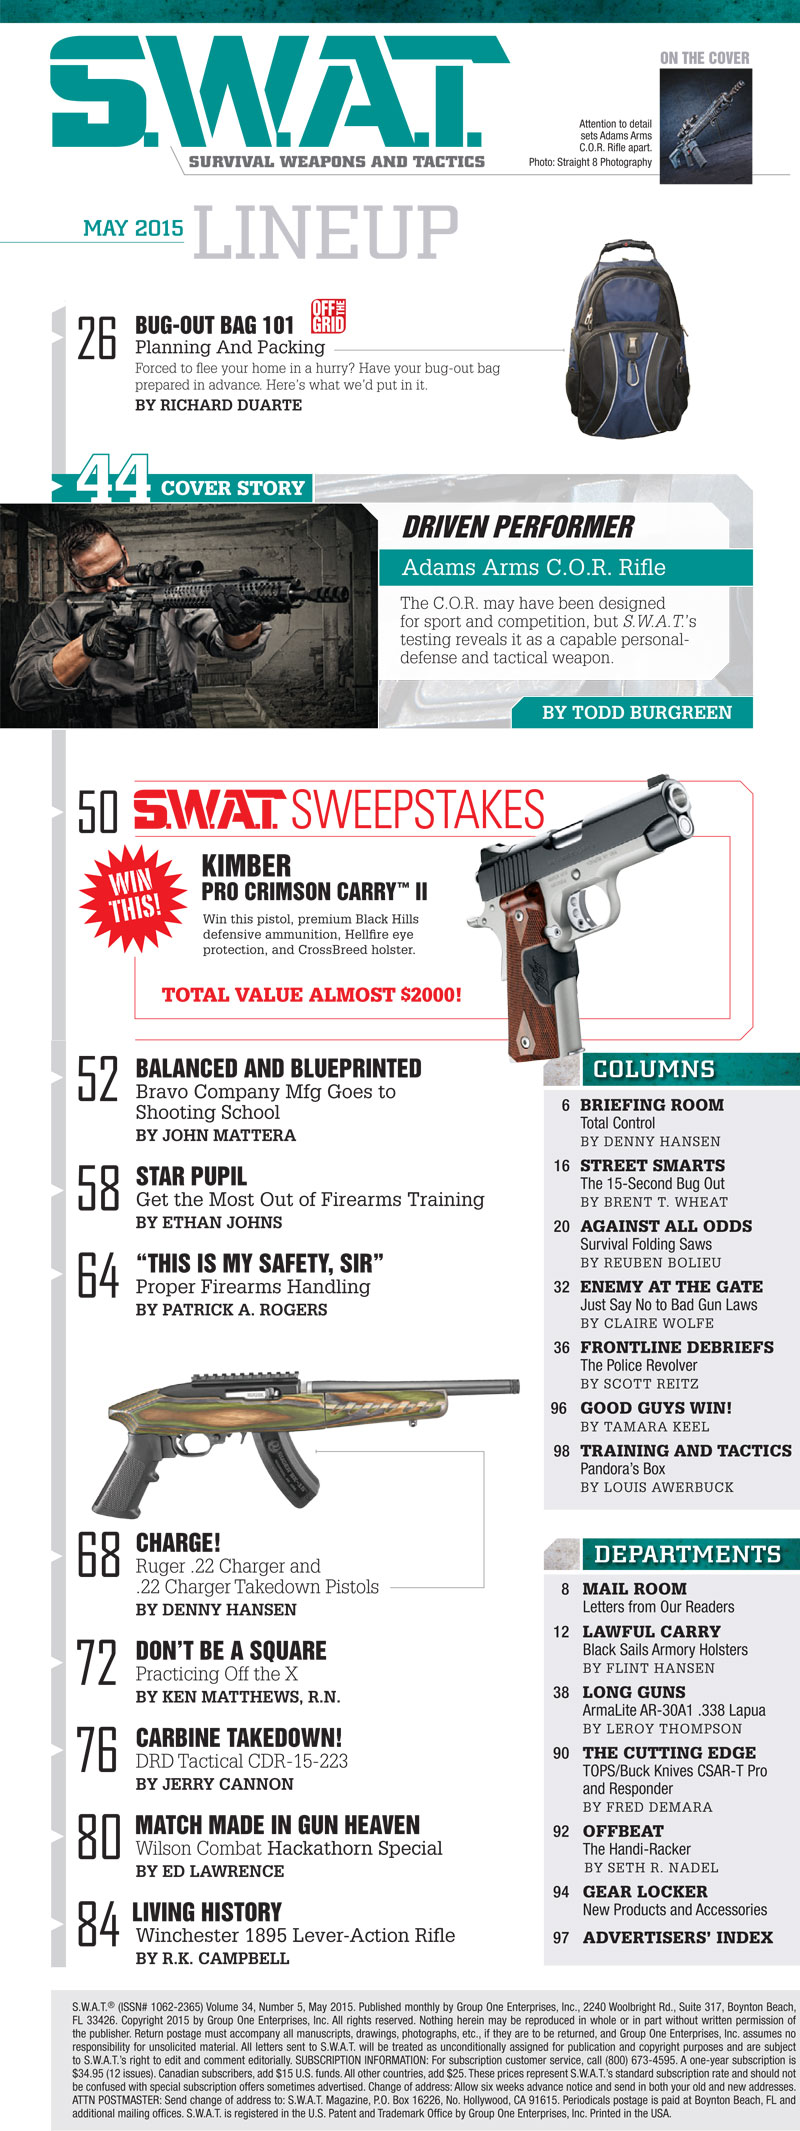 May 2015 Issue Lineup | GUN MAGAZINE | SWAT VAULT